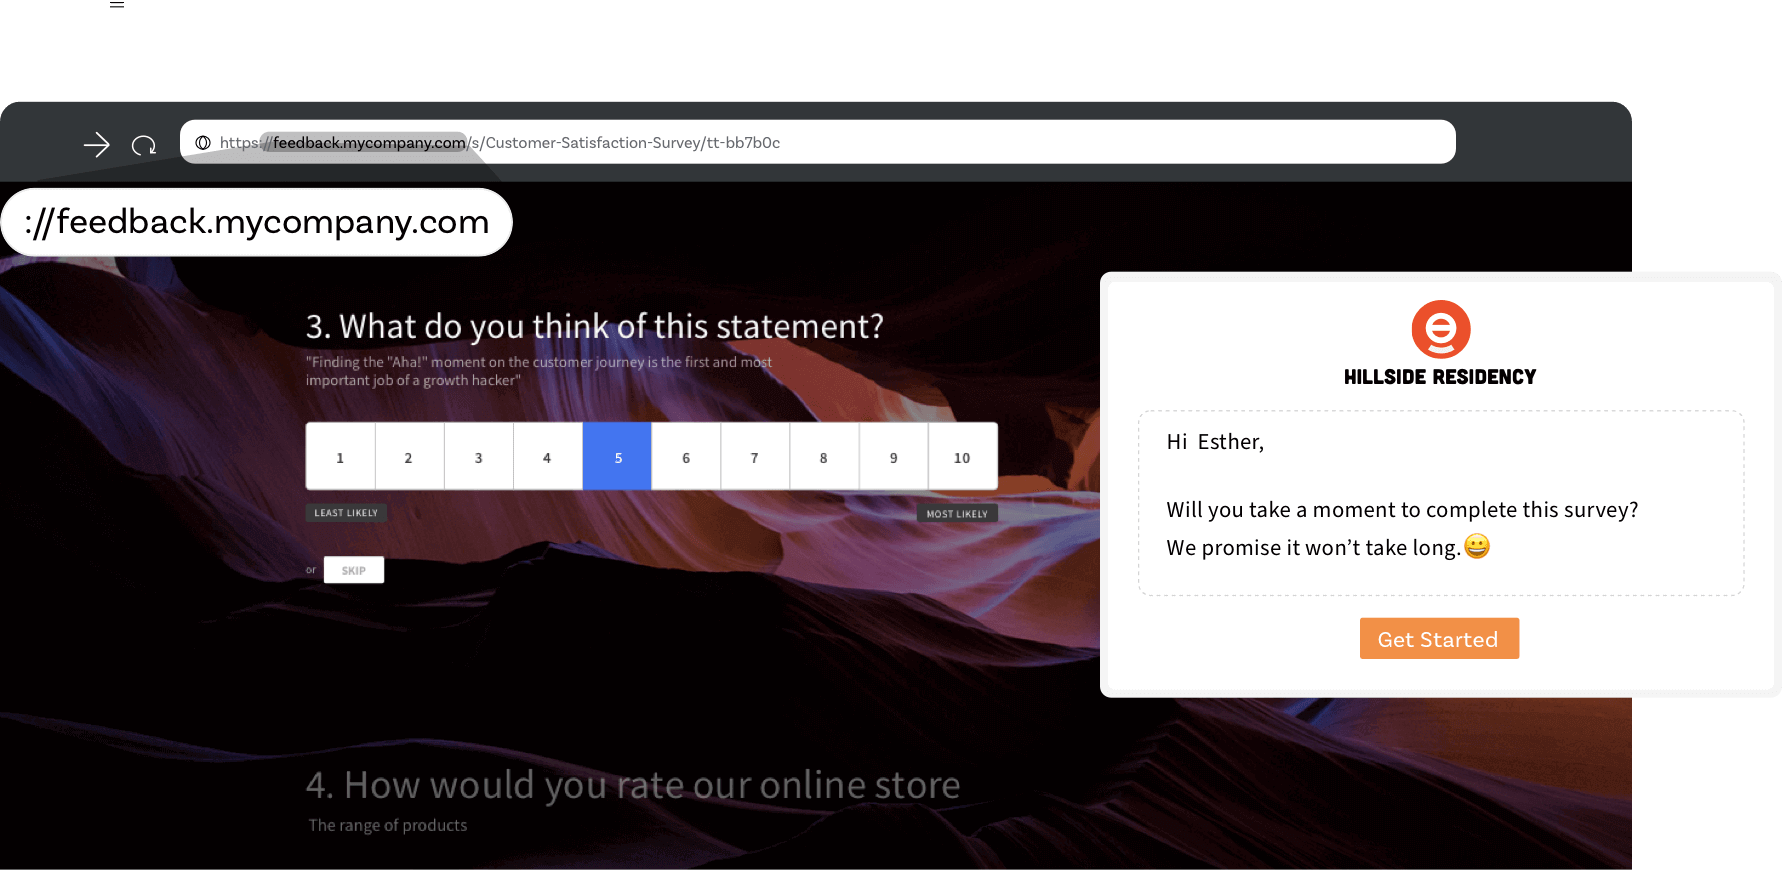 White-label and brand your surveys.